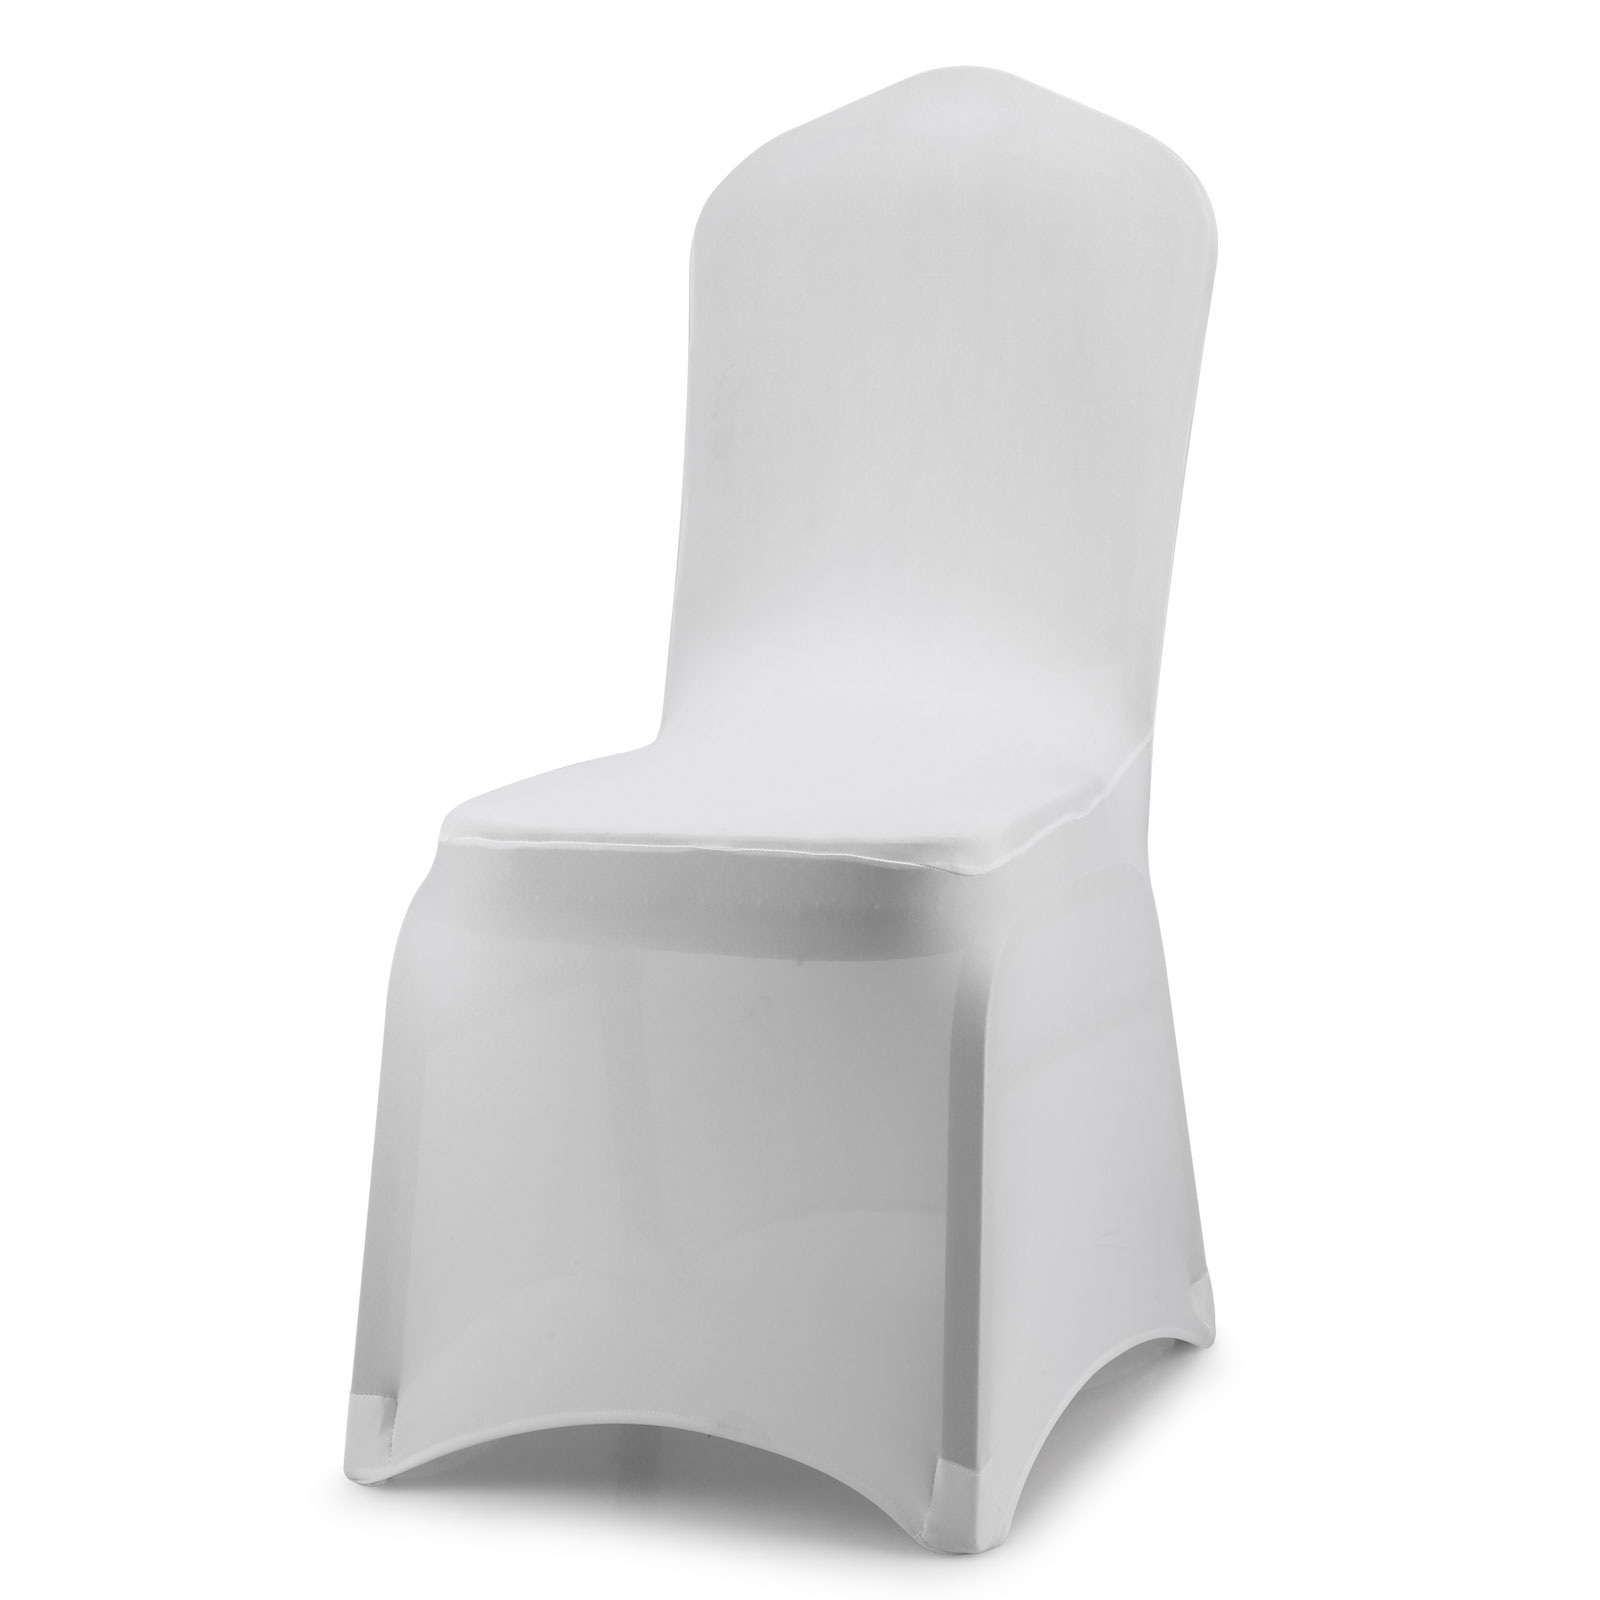 Universal White Polyester Spandex Folding Chair Covers